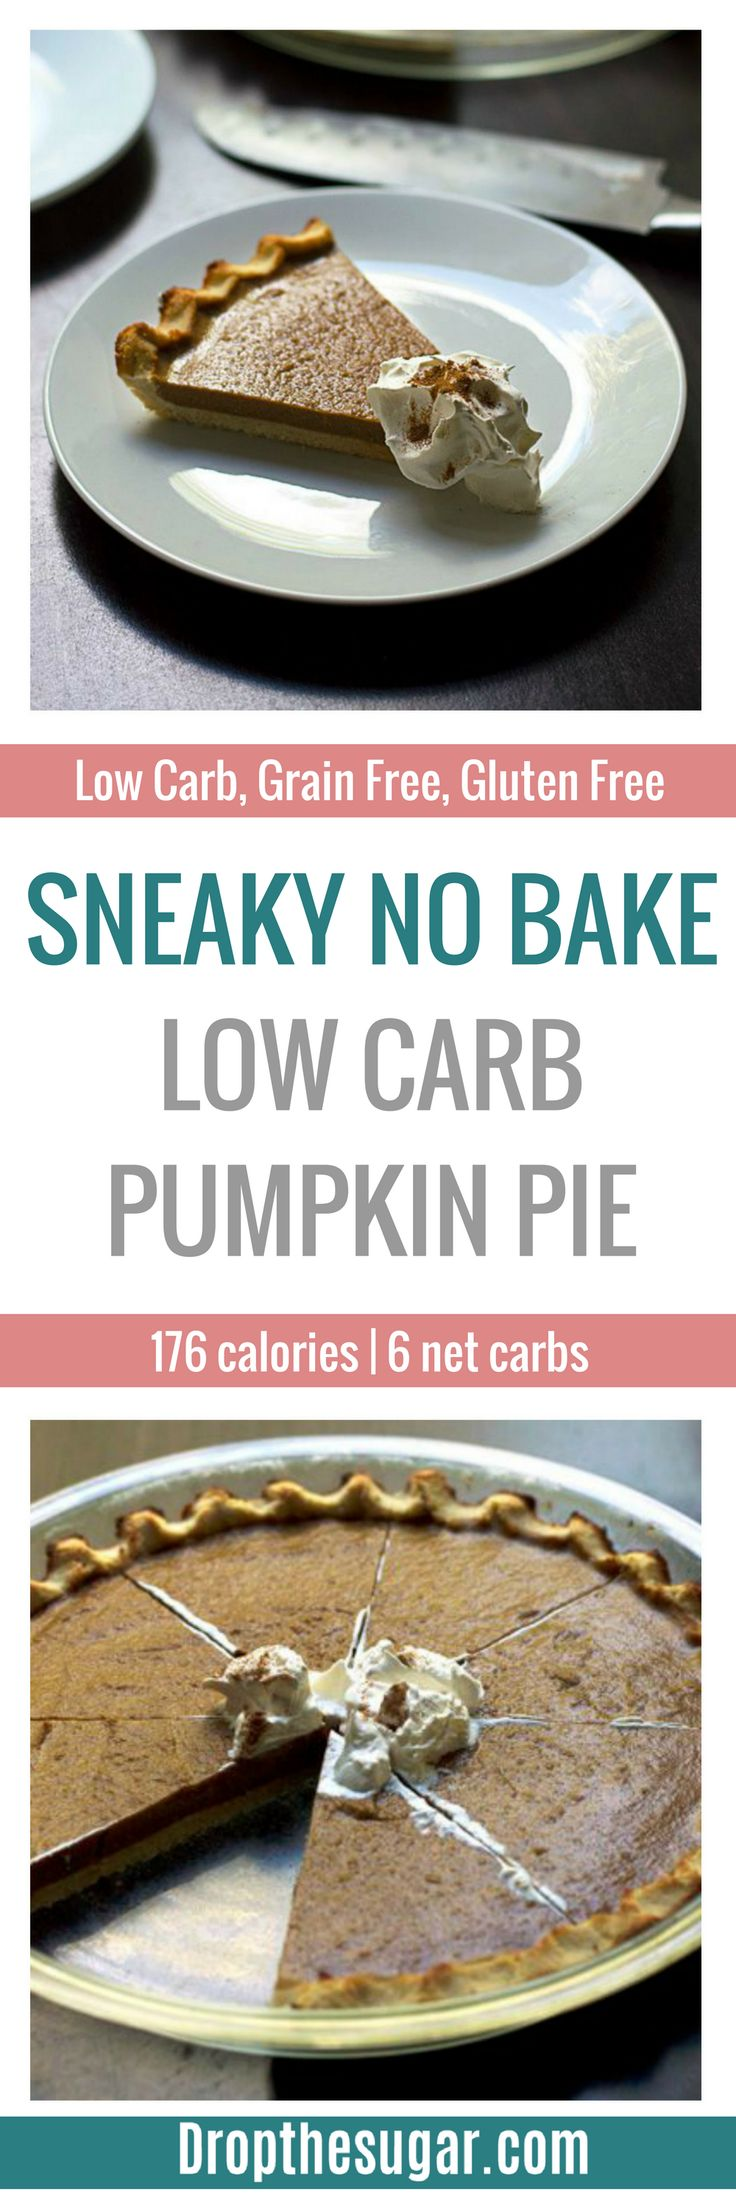 Sneaky No Bake Low Carb Pumpkin Pie | A low car pumpkin pie recipe with a sneaky vegetable inside. This is a sugar free pumpkin pie more for those who want a smaller version that's more like a torte. But, you can double the recipe to make it thick. Pin now to make later!